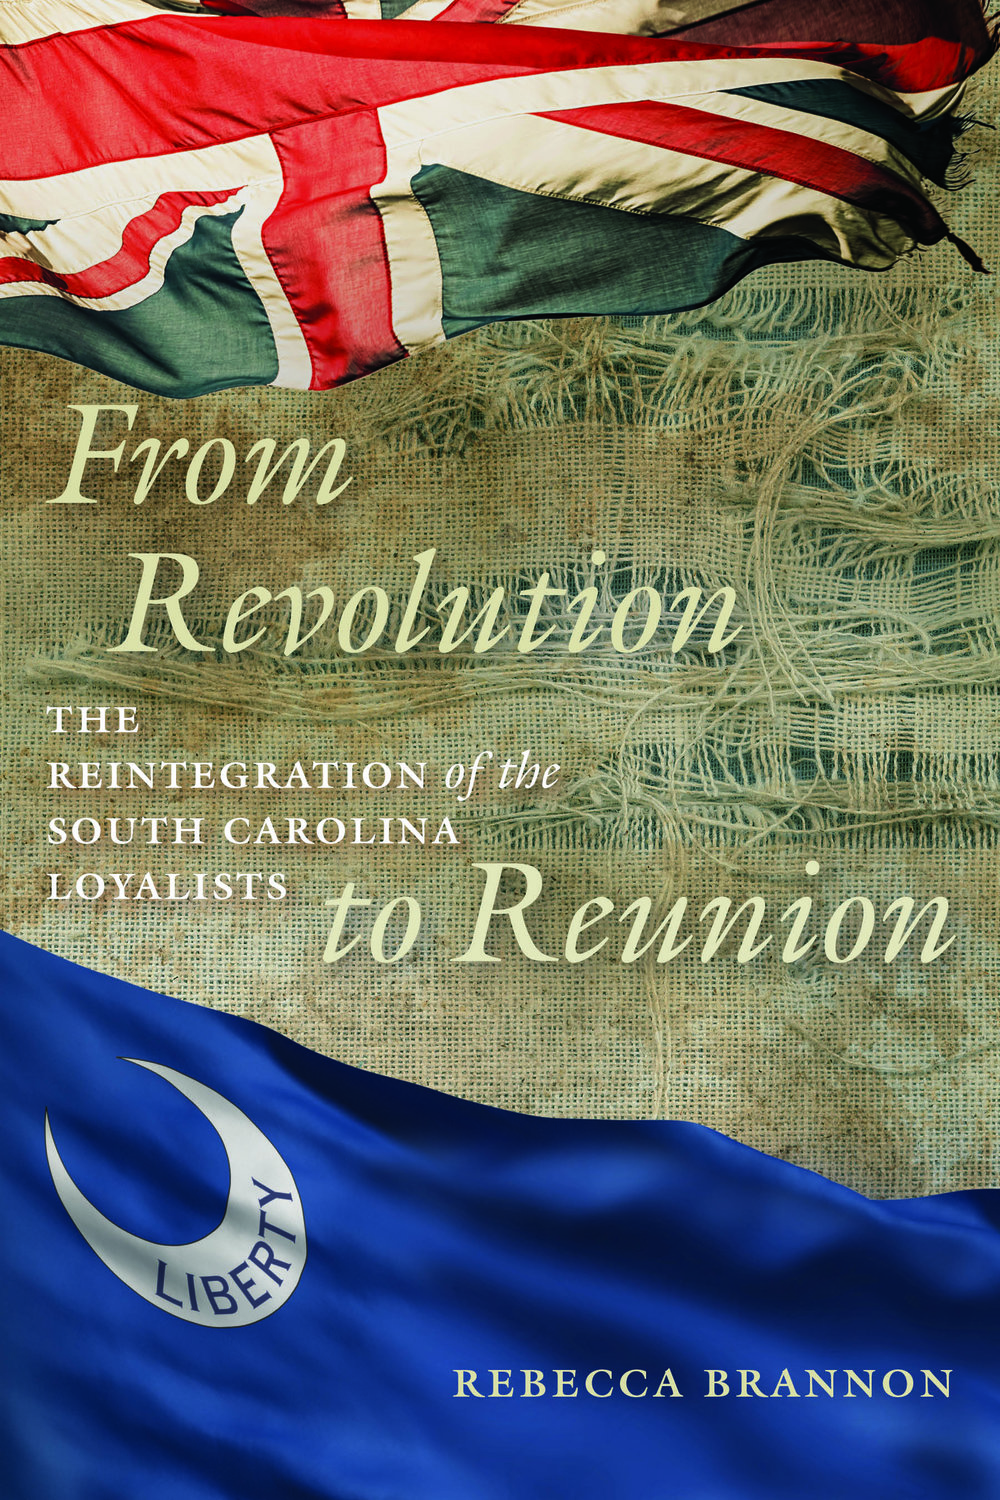 From Revolution to Reunion  (USC Press, 2016)